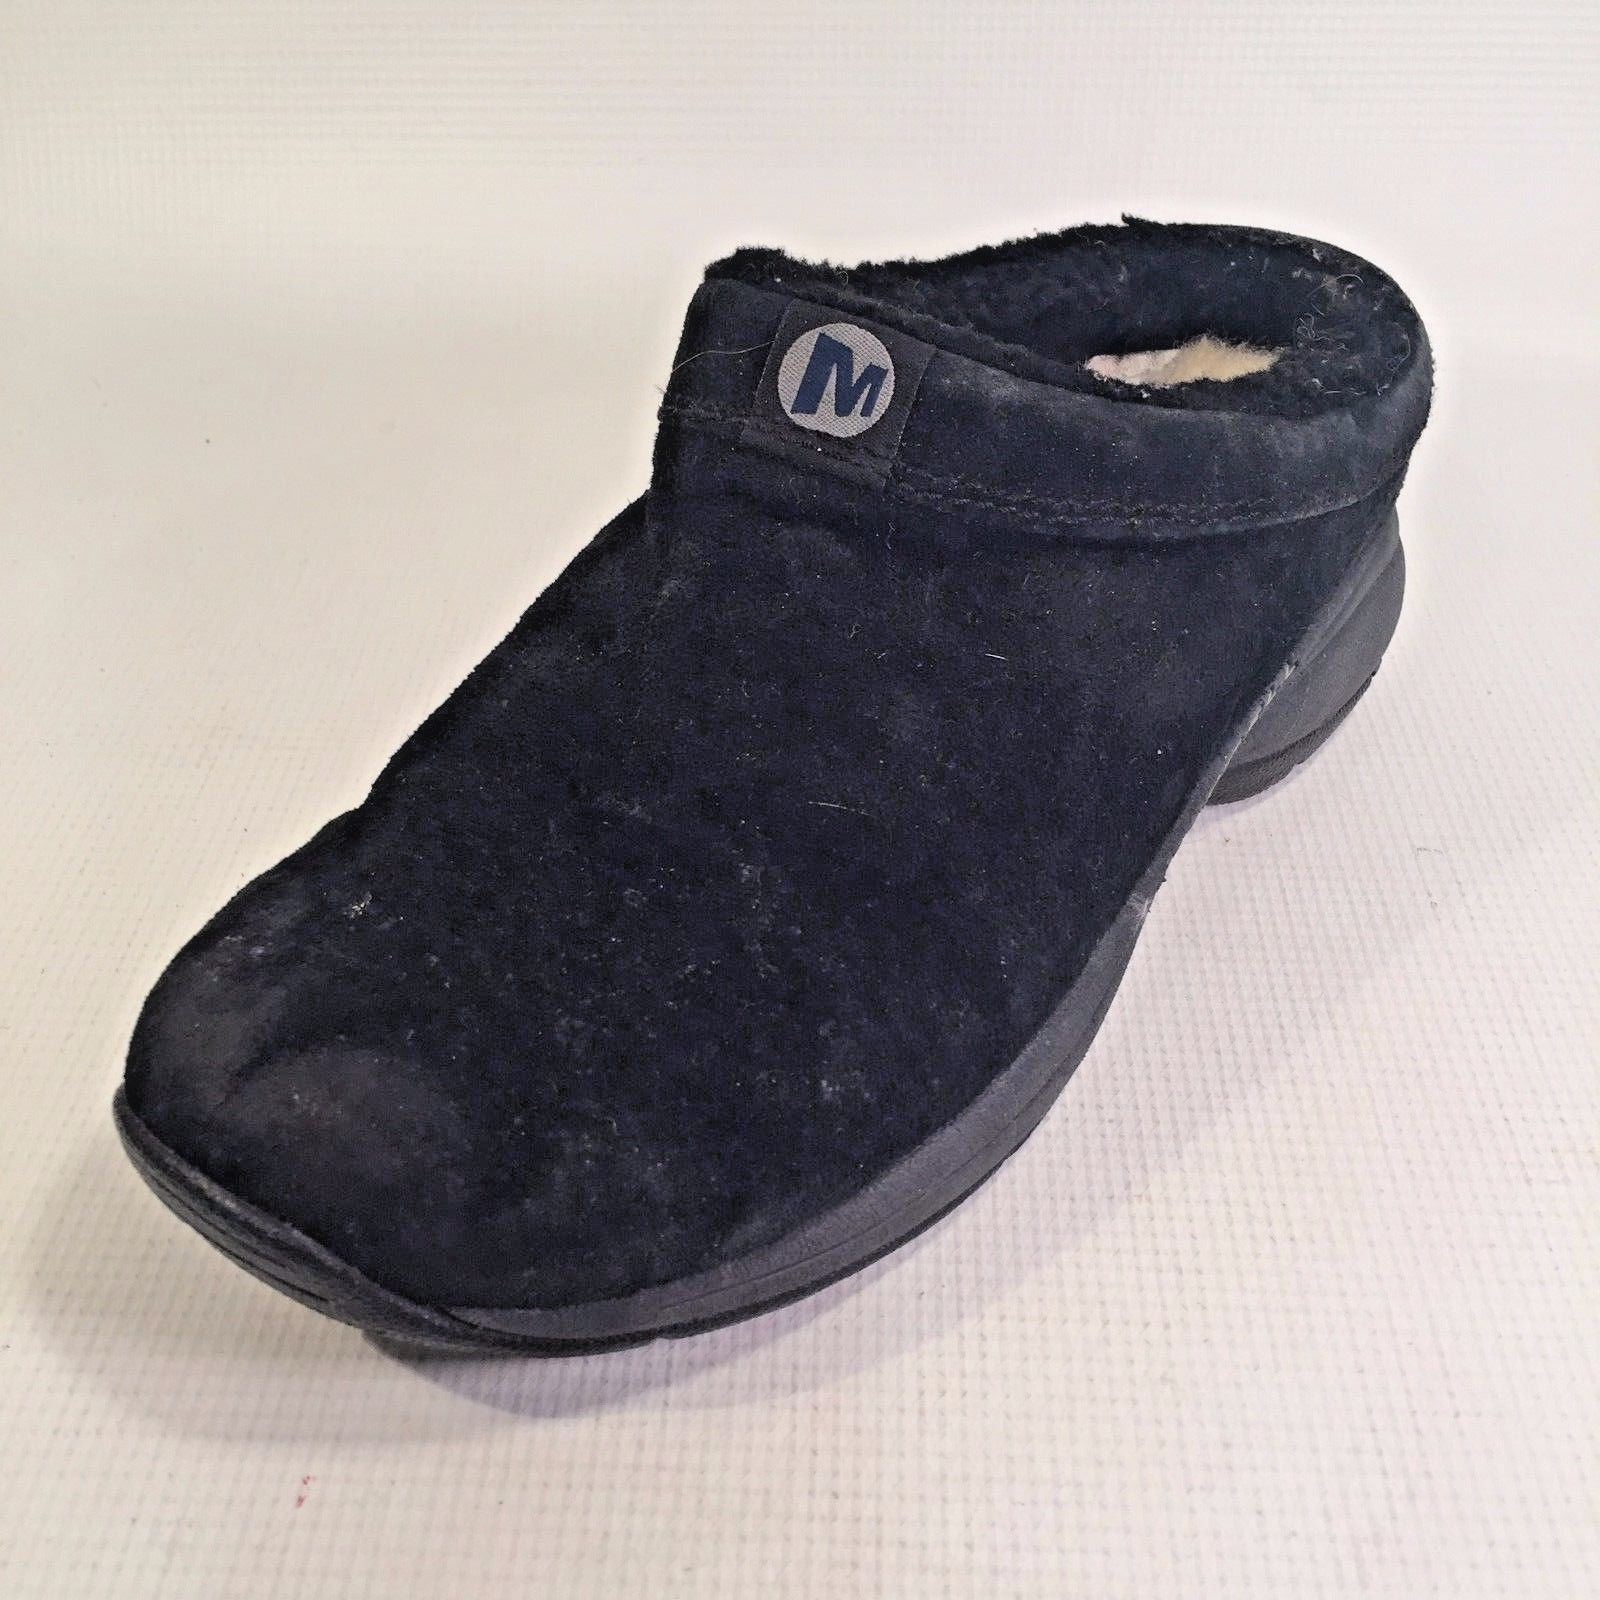 Women's MERRELL Black Suede Mules Fleece Insole 8 - 8 1/2 M